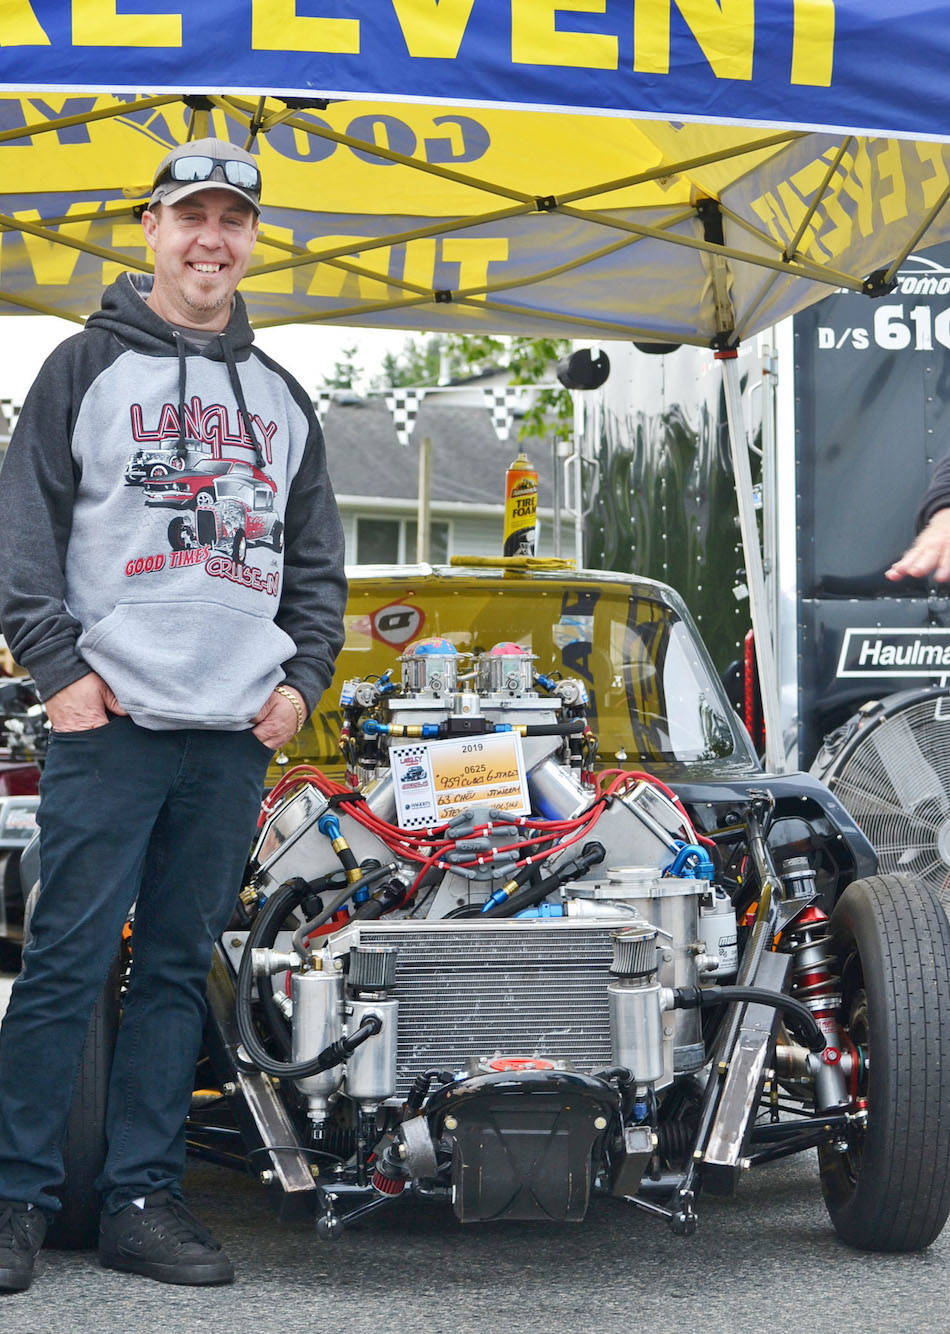 Aldergrove contributes greatly to record-breaking Cruise-In